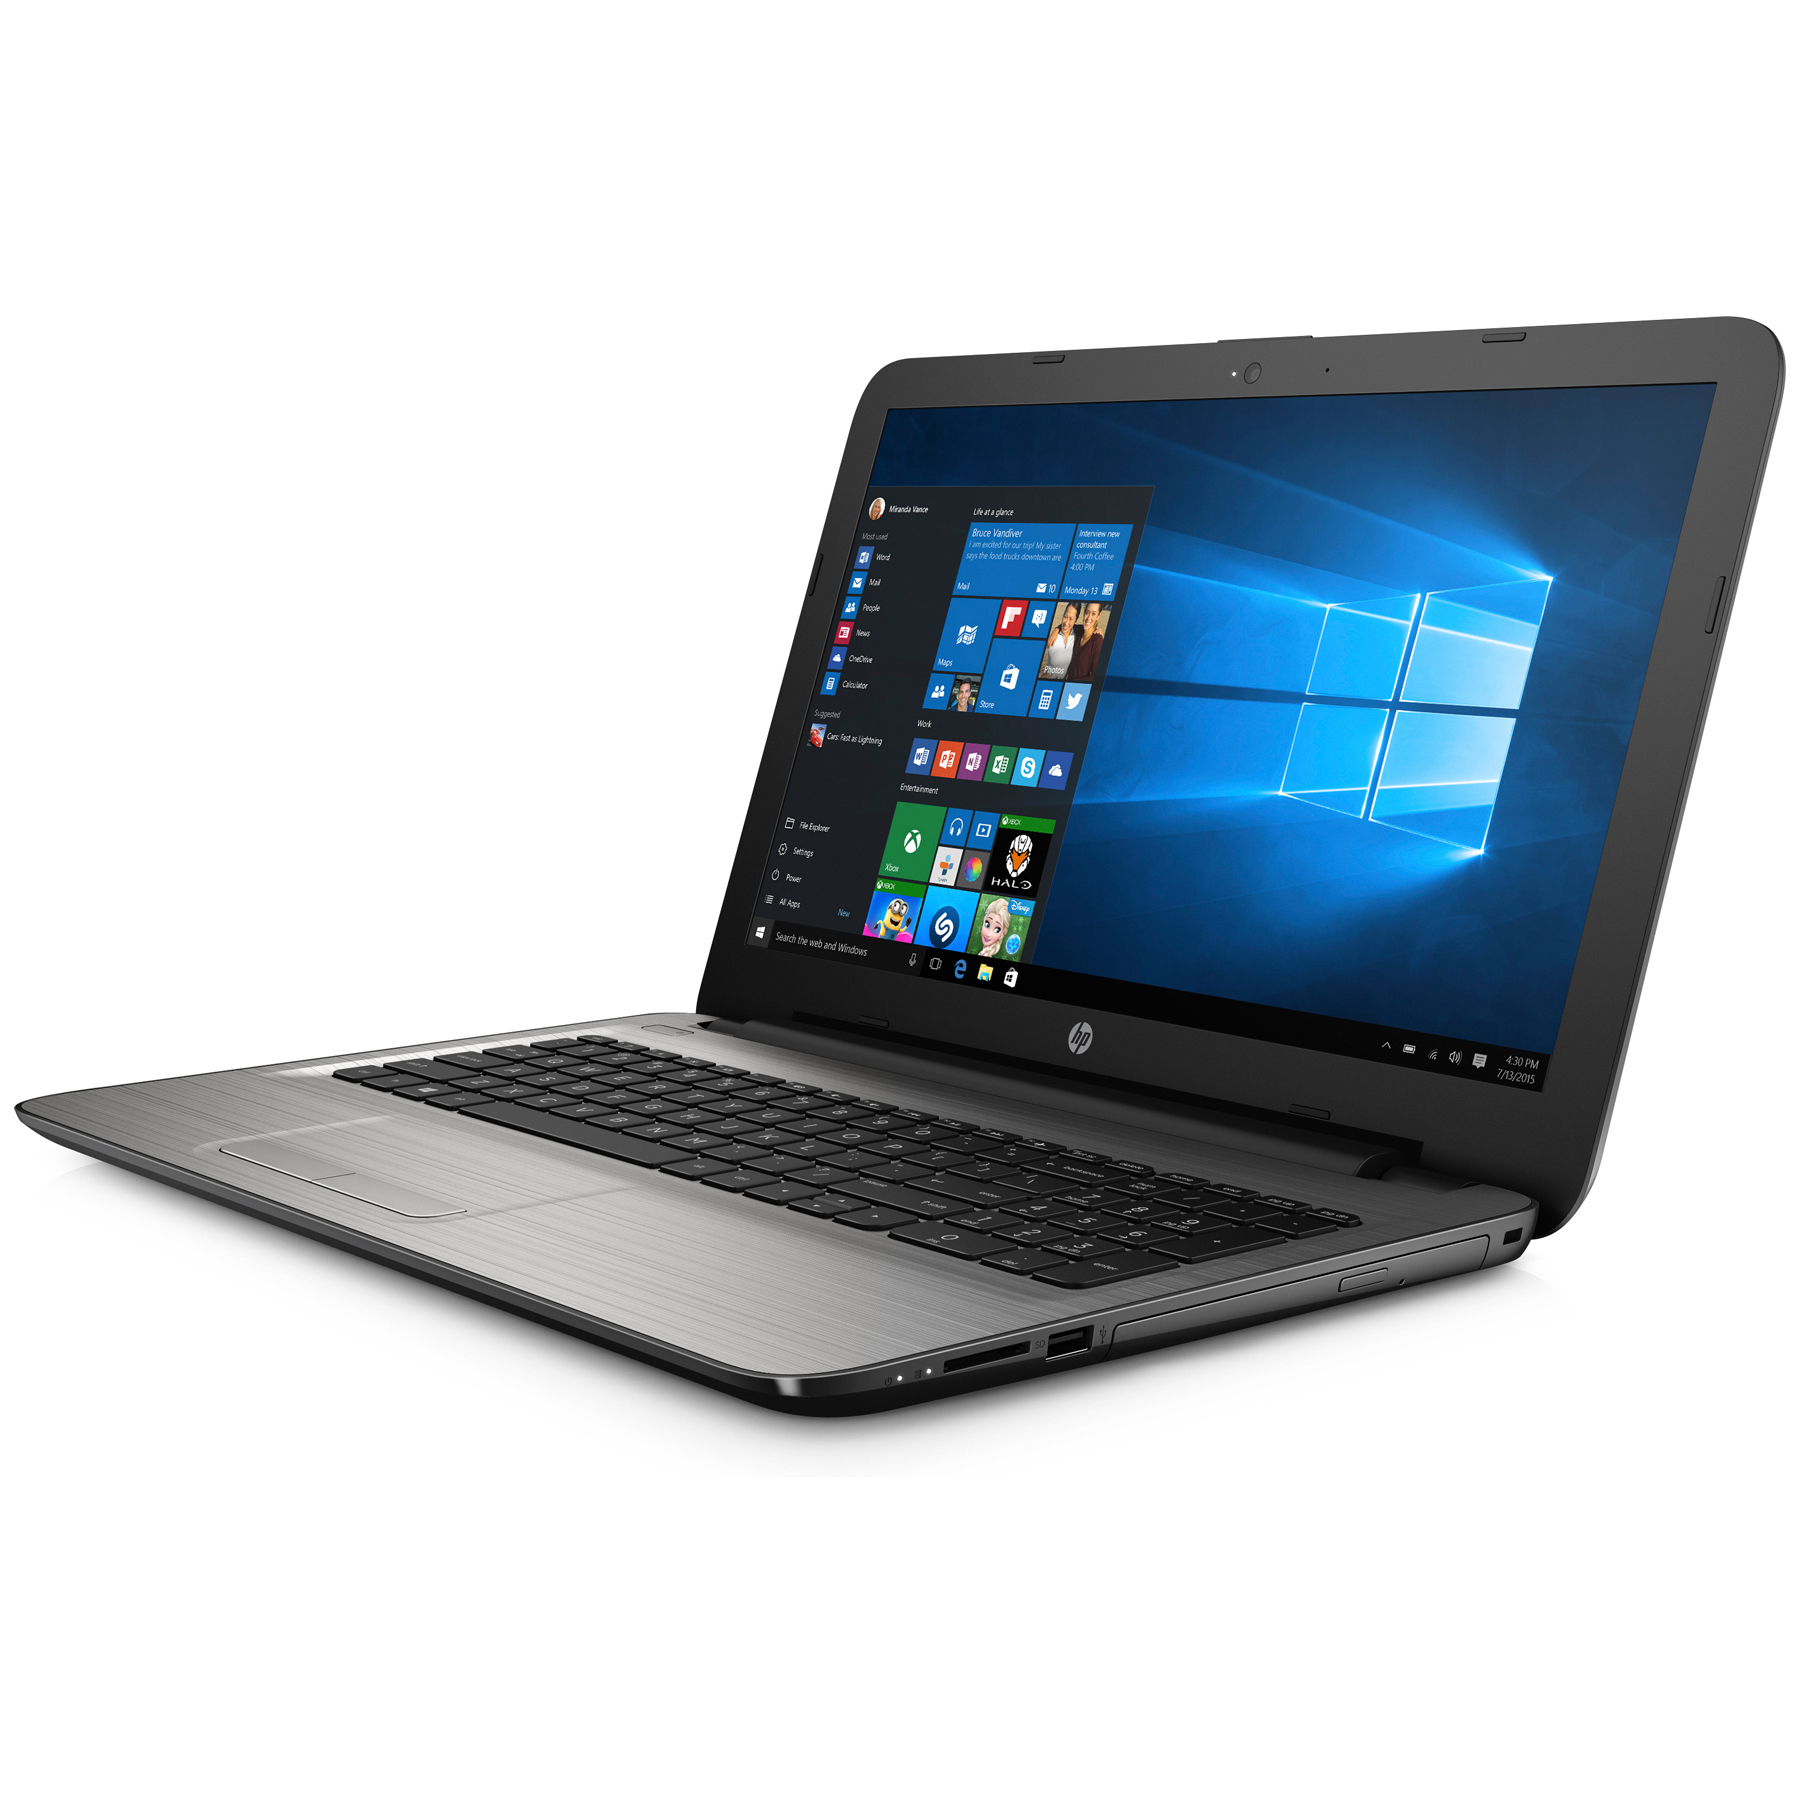 Hewlett Packard (HP) HP 15-ba015ng Notebook, 15.6 Zoll, AMD A10-9600P APU, 8GB RAM, 256GB SSD, R7-M440/2GB Grafik, Win10